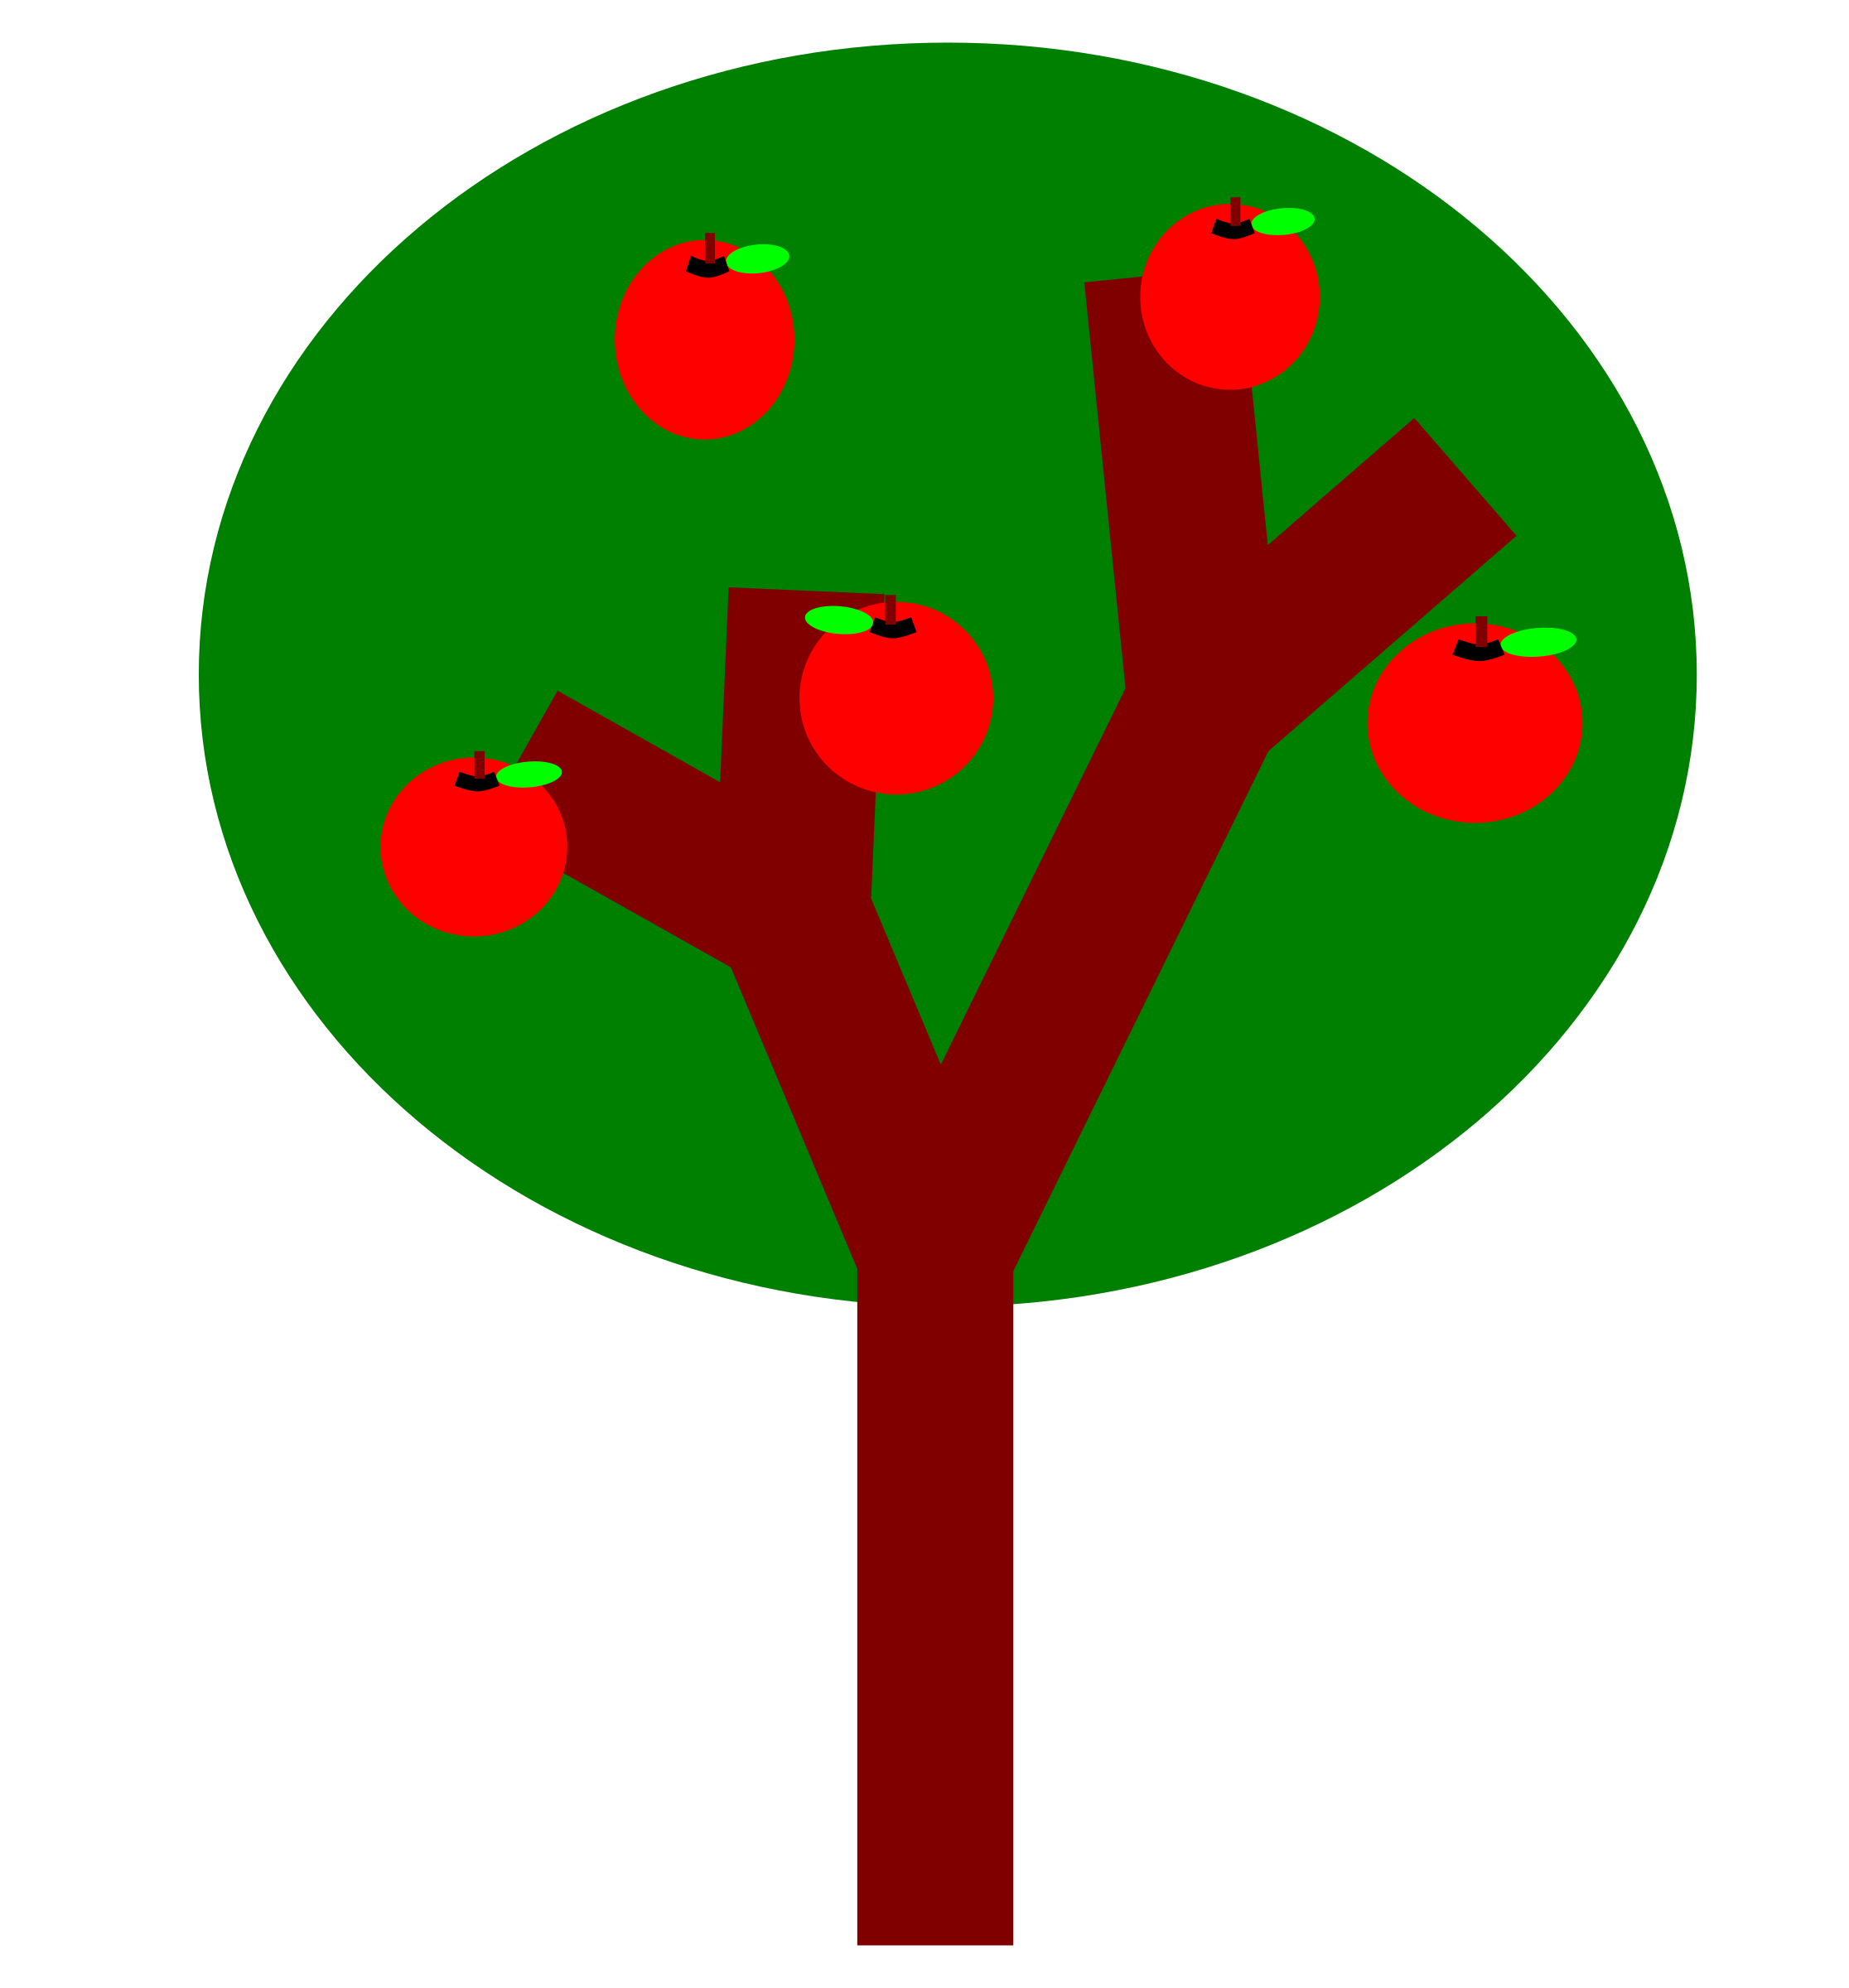 Apple tree clipart images png download Clipart - A tree with apples png download